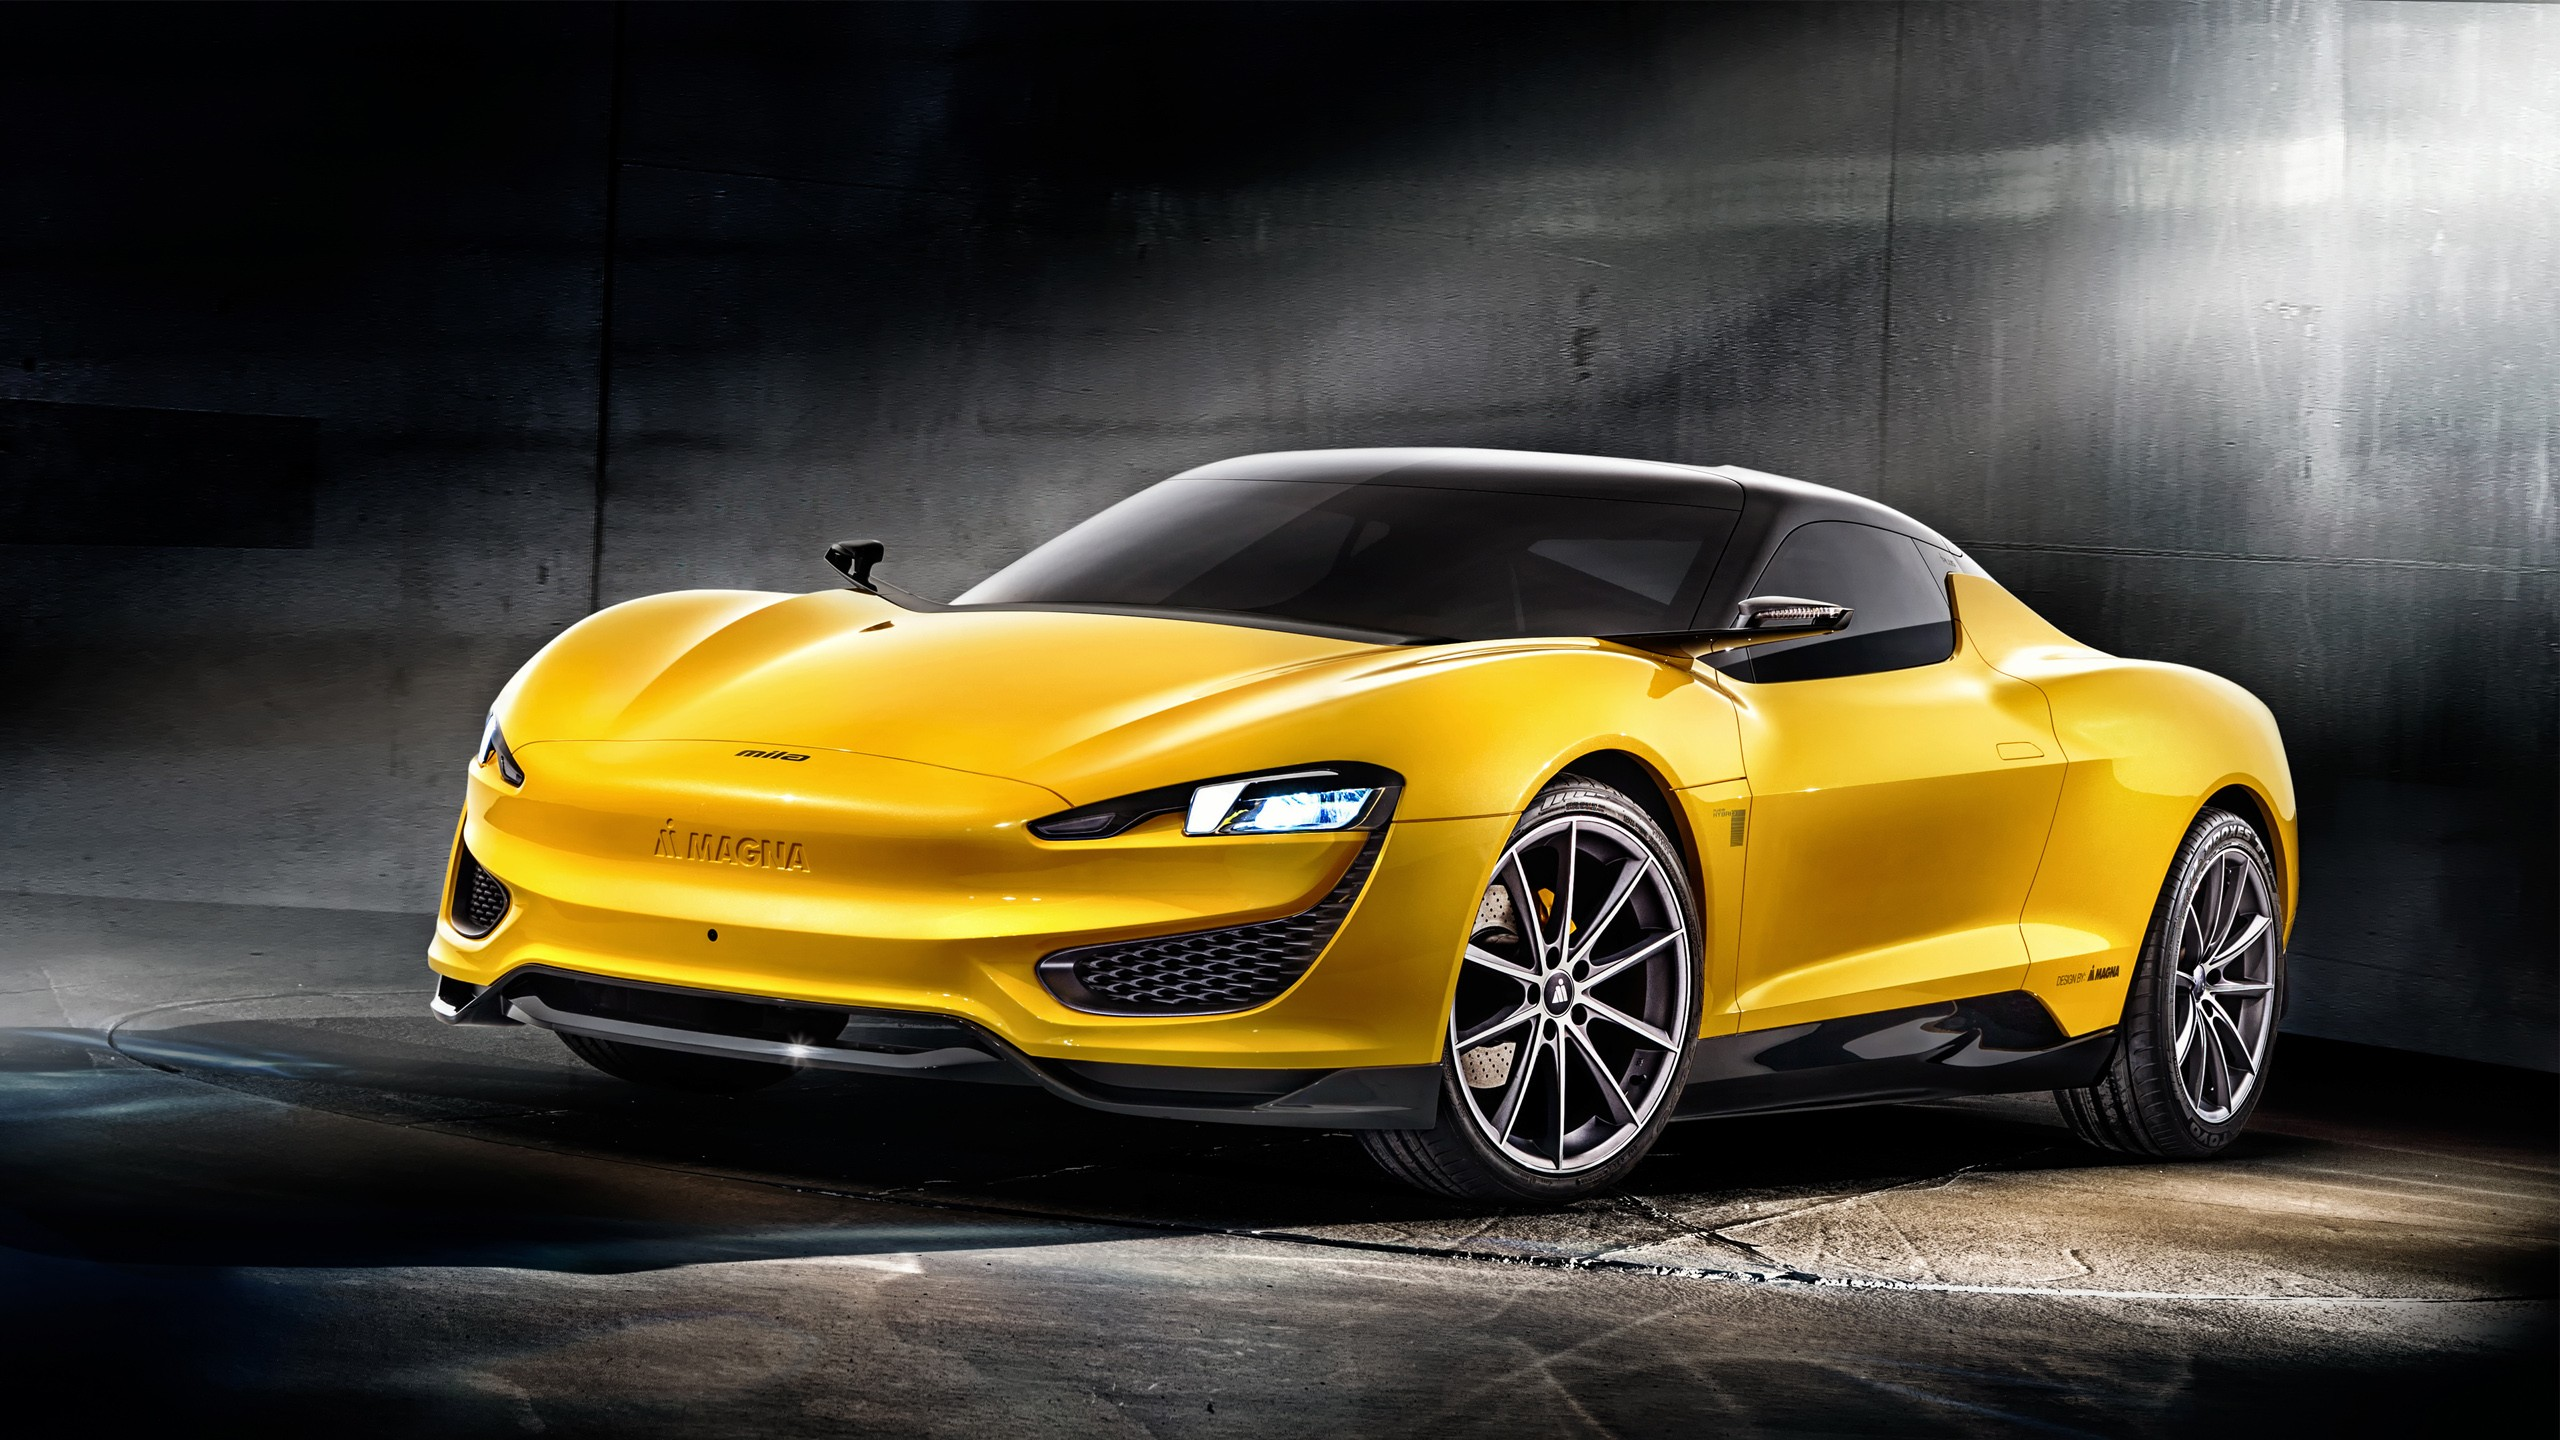 2015 Magna Steyr MILA Plus Hybrid Concept Wallpaper | HD ...